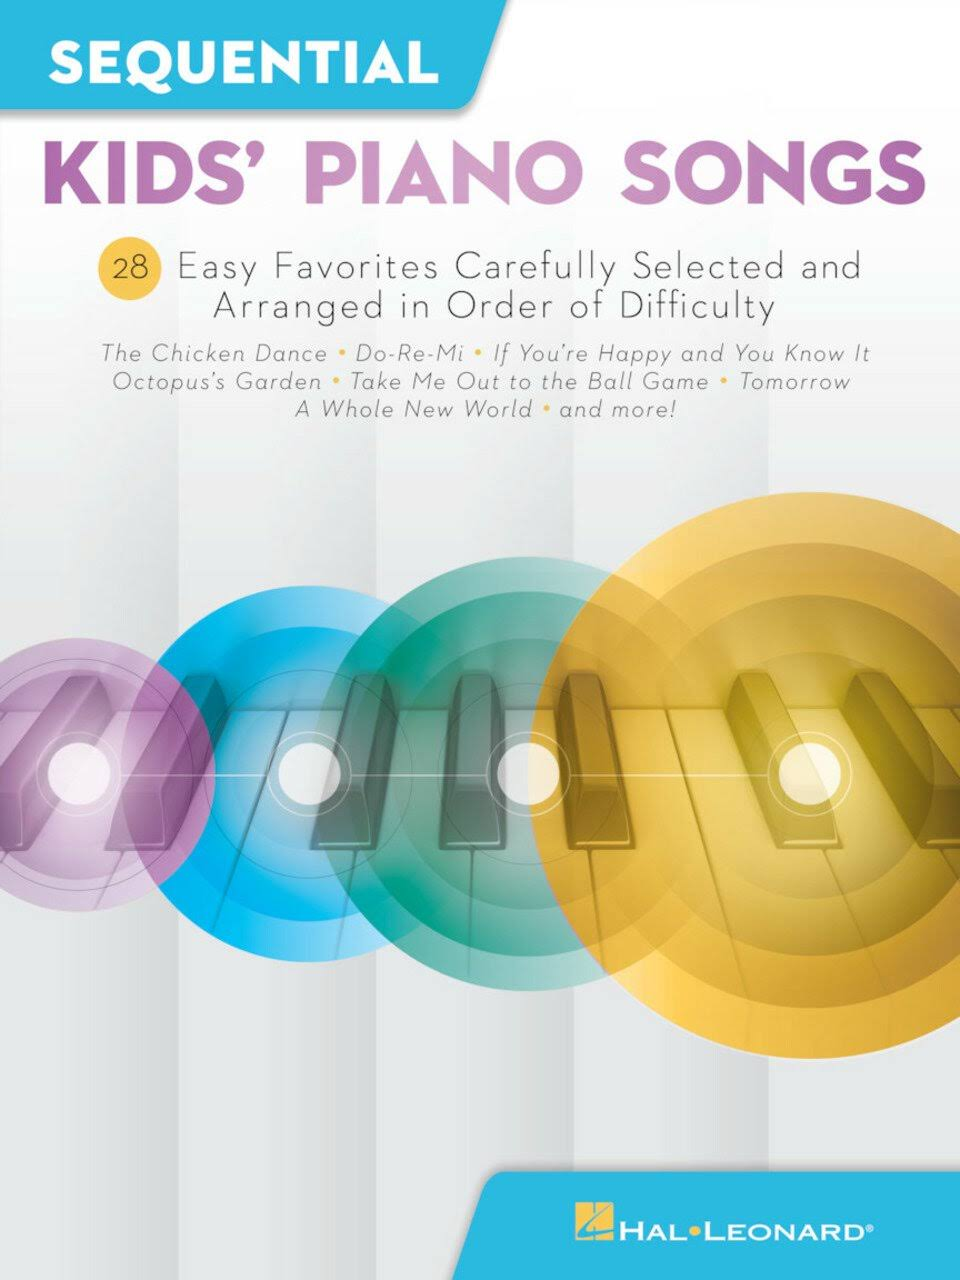 Hal Leonard Sequential Kids' Piano Songs - 28 Easy Favorites Carefully Selected and Arranged in Order of Difficulty Songbook